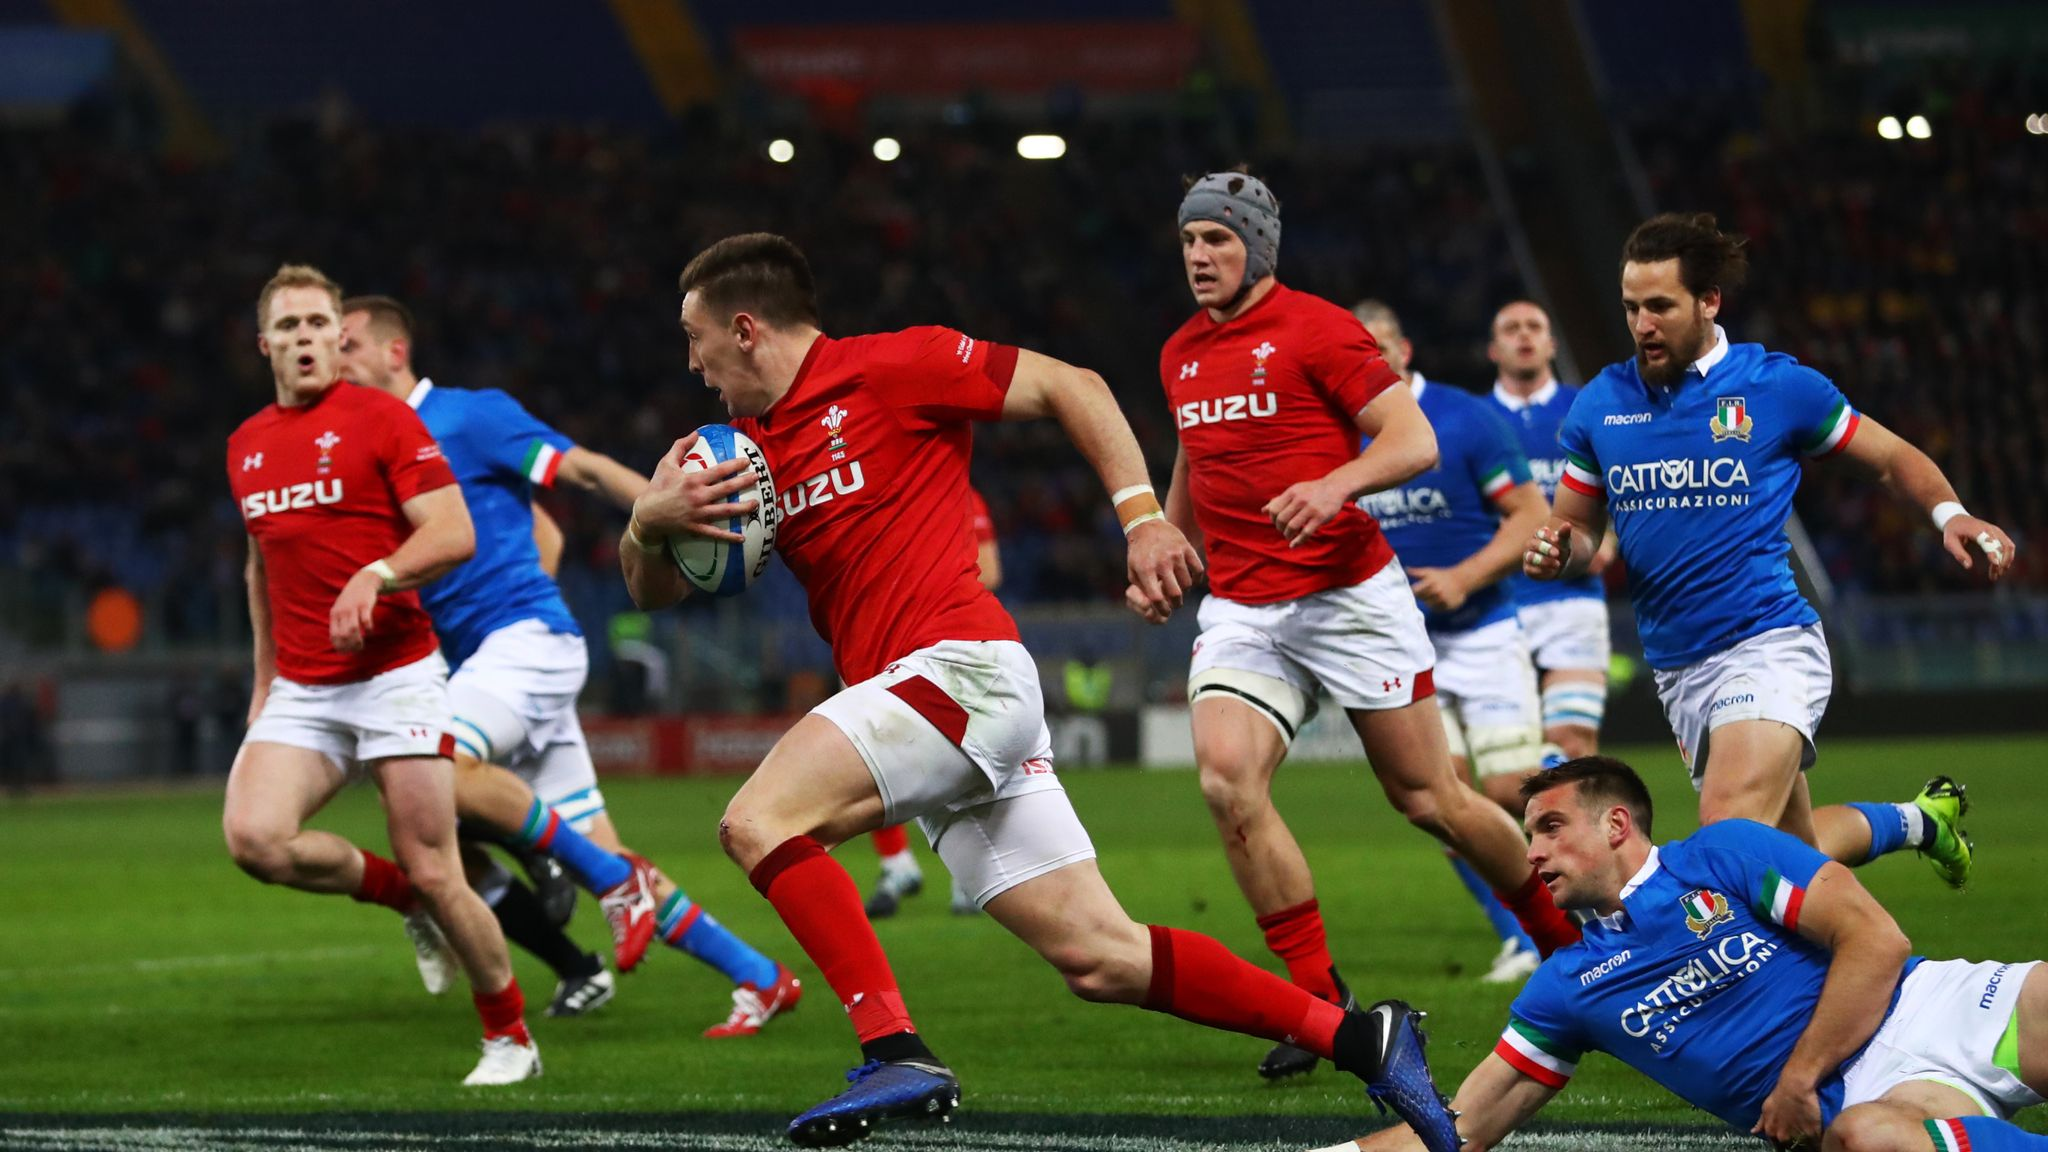 3e23d3b7a4a Six Nations 2019 Round 2: Ireland respond, England destroy France,  much-changed Wales beat Italy | Rugby Union News | Sky Sports